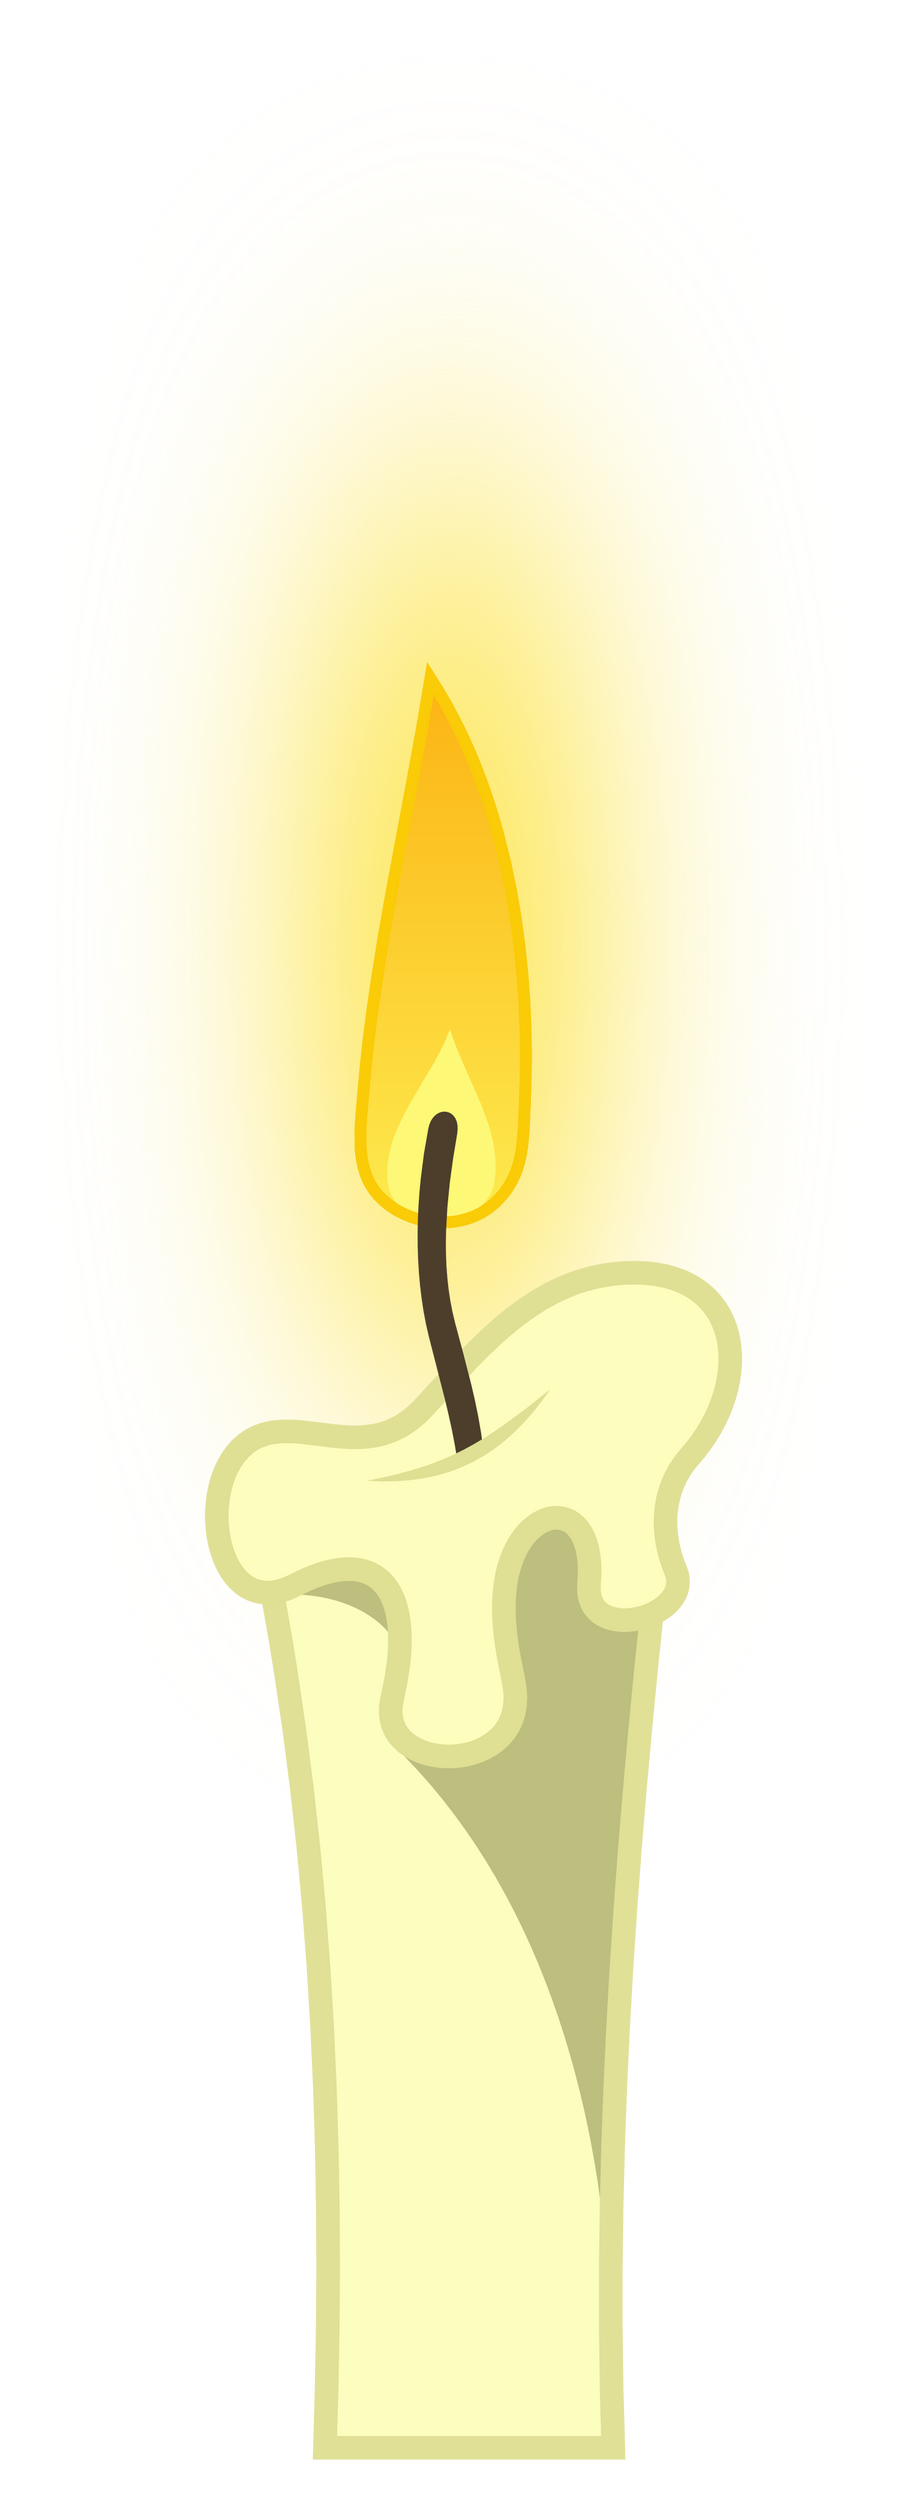 White Candle Png Mlp: white candle by